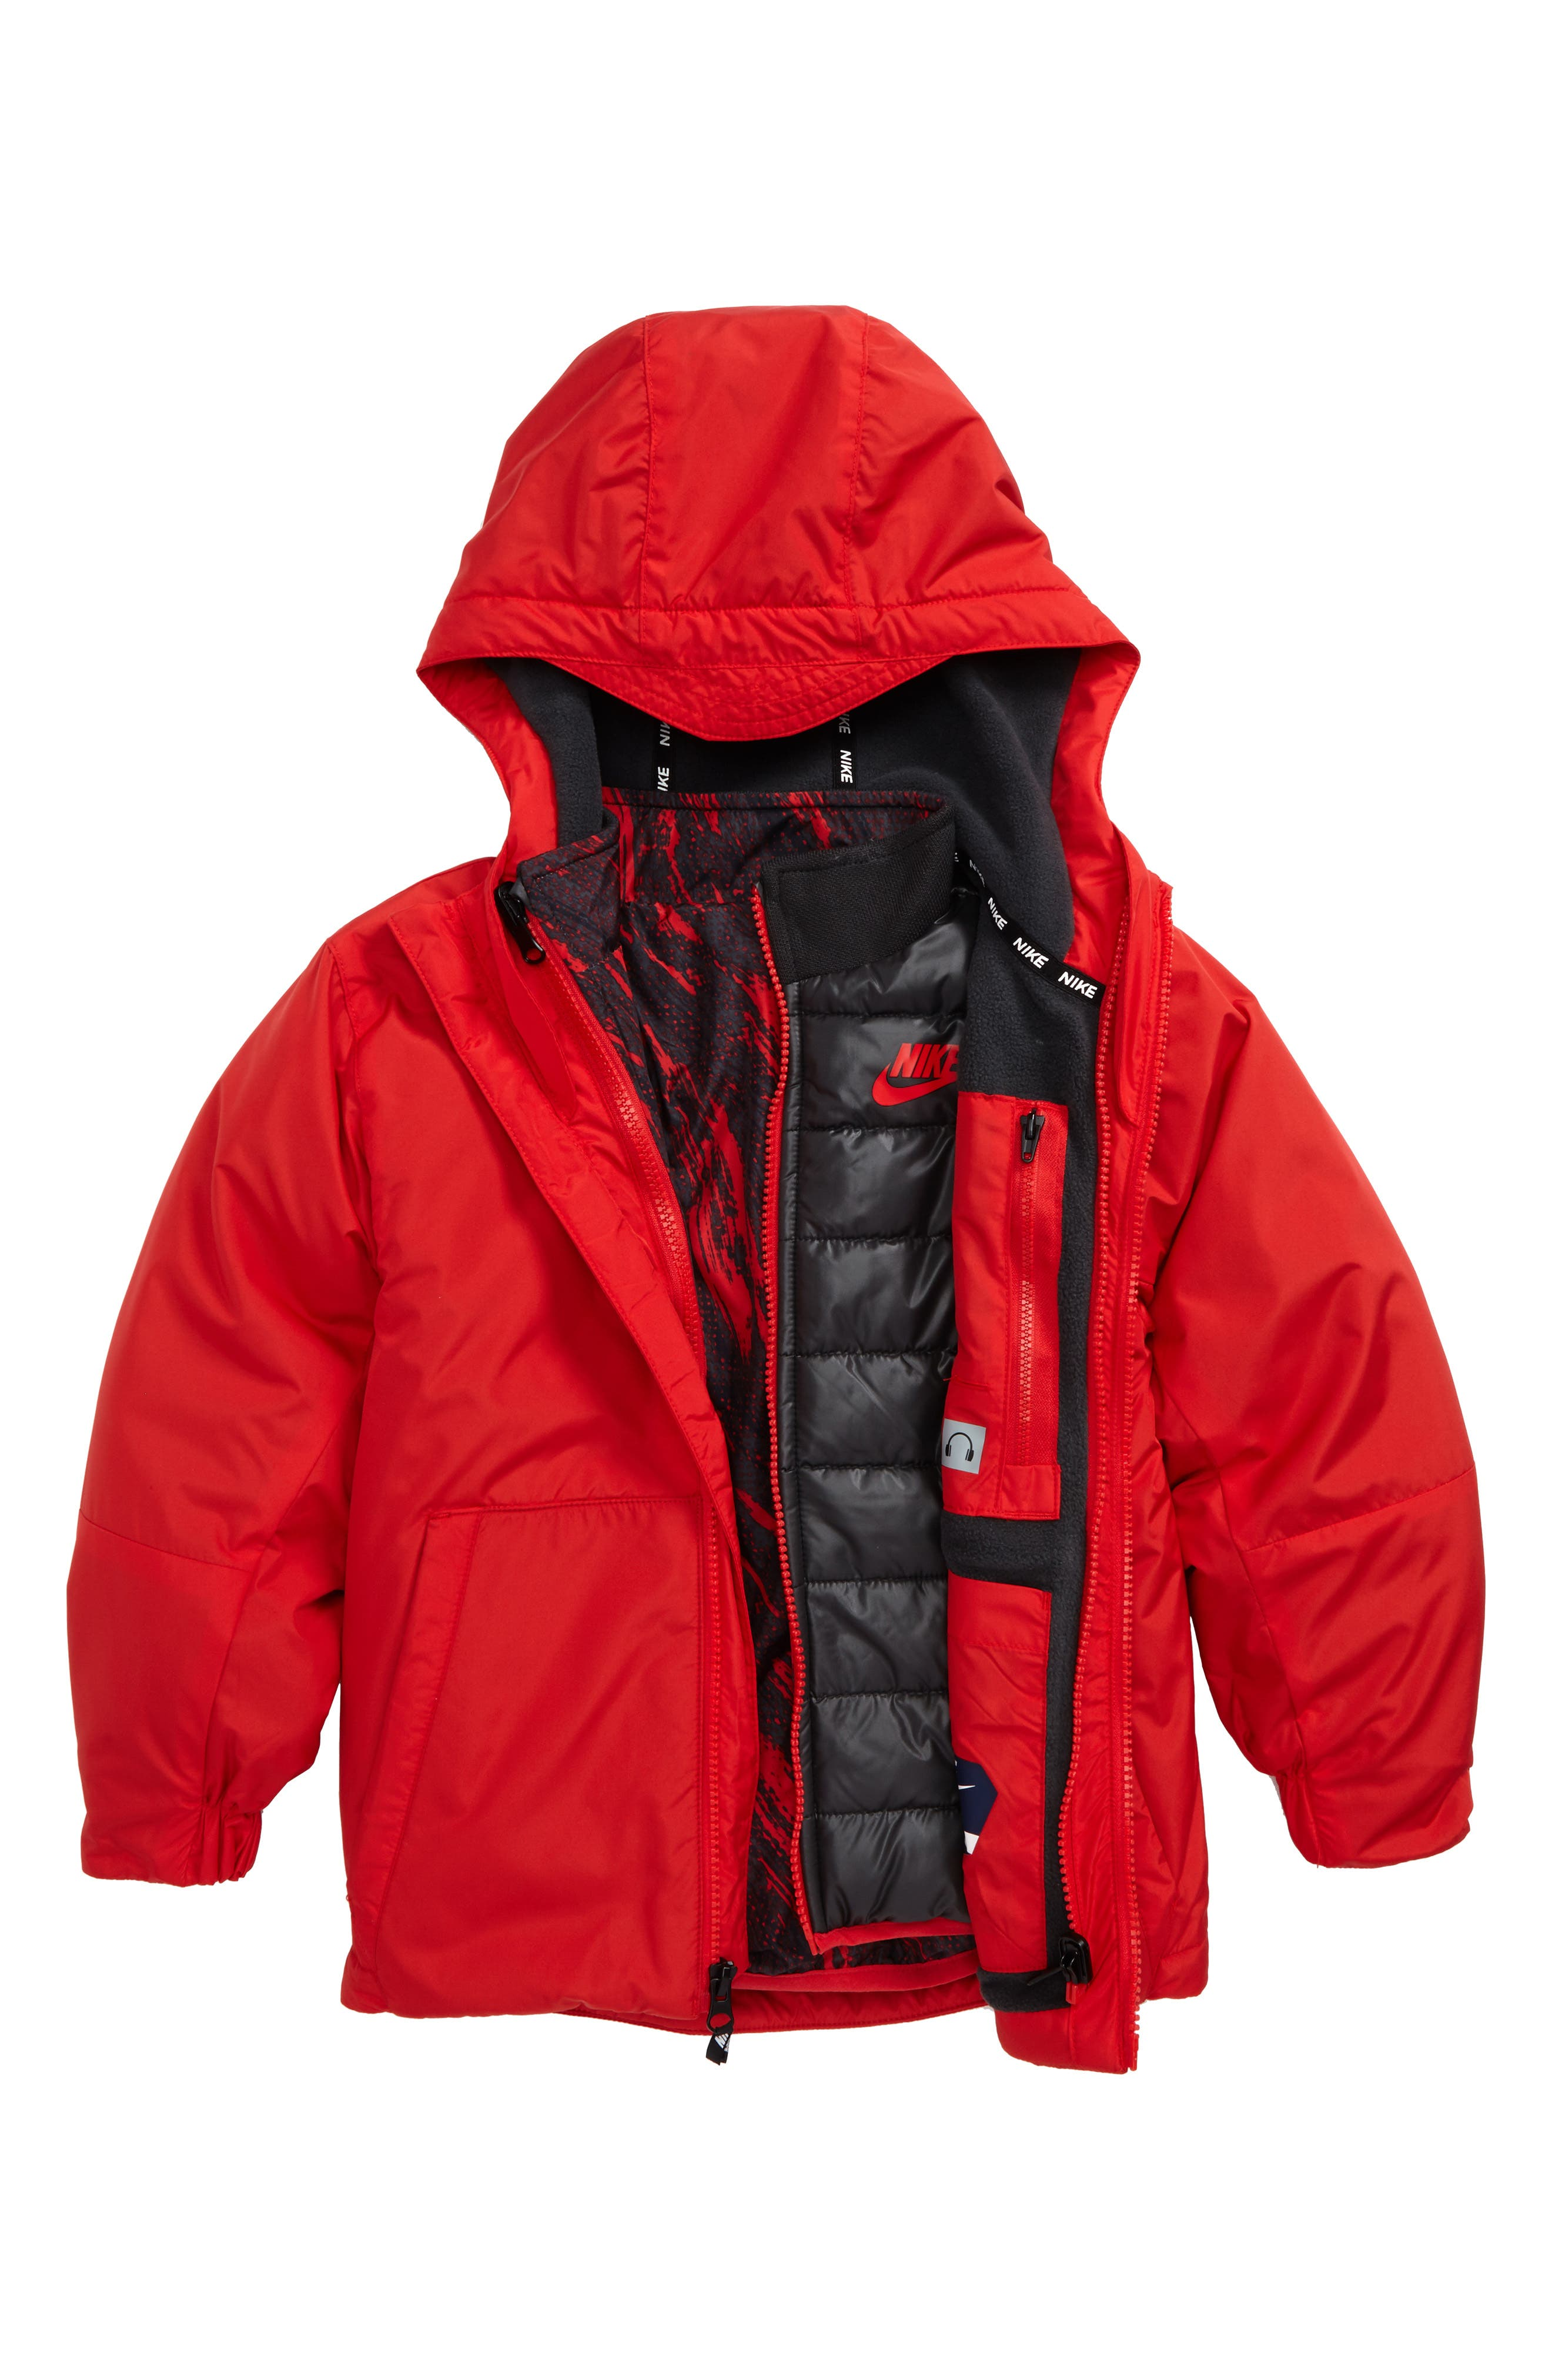 Systems 3-in-1 Jacket,                         Main,                         color, University Red